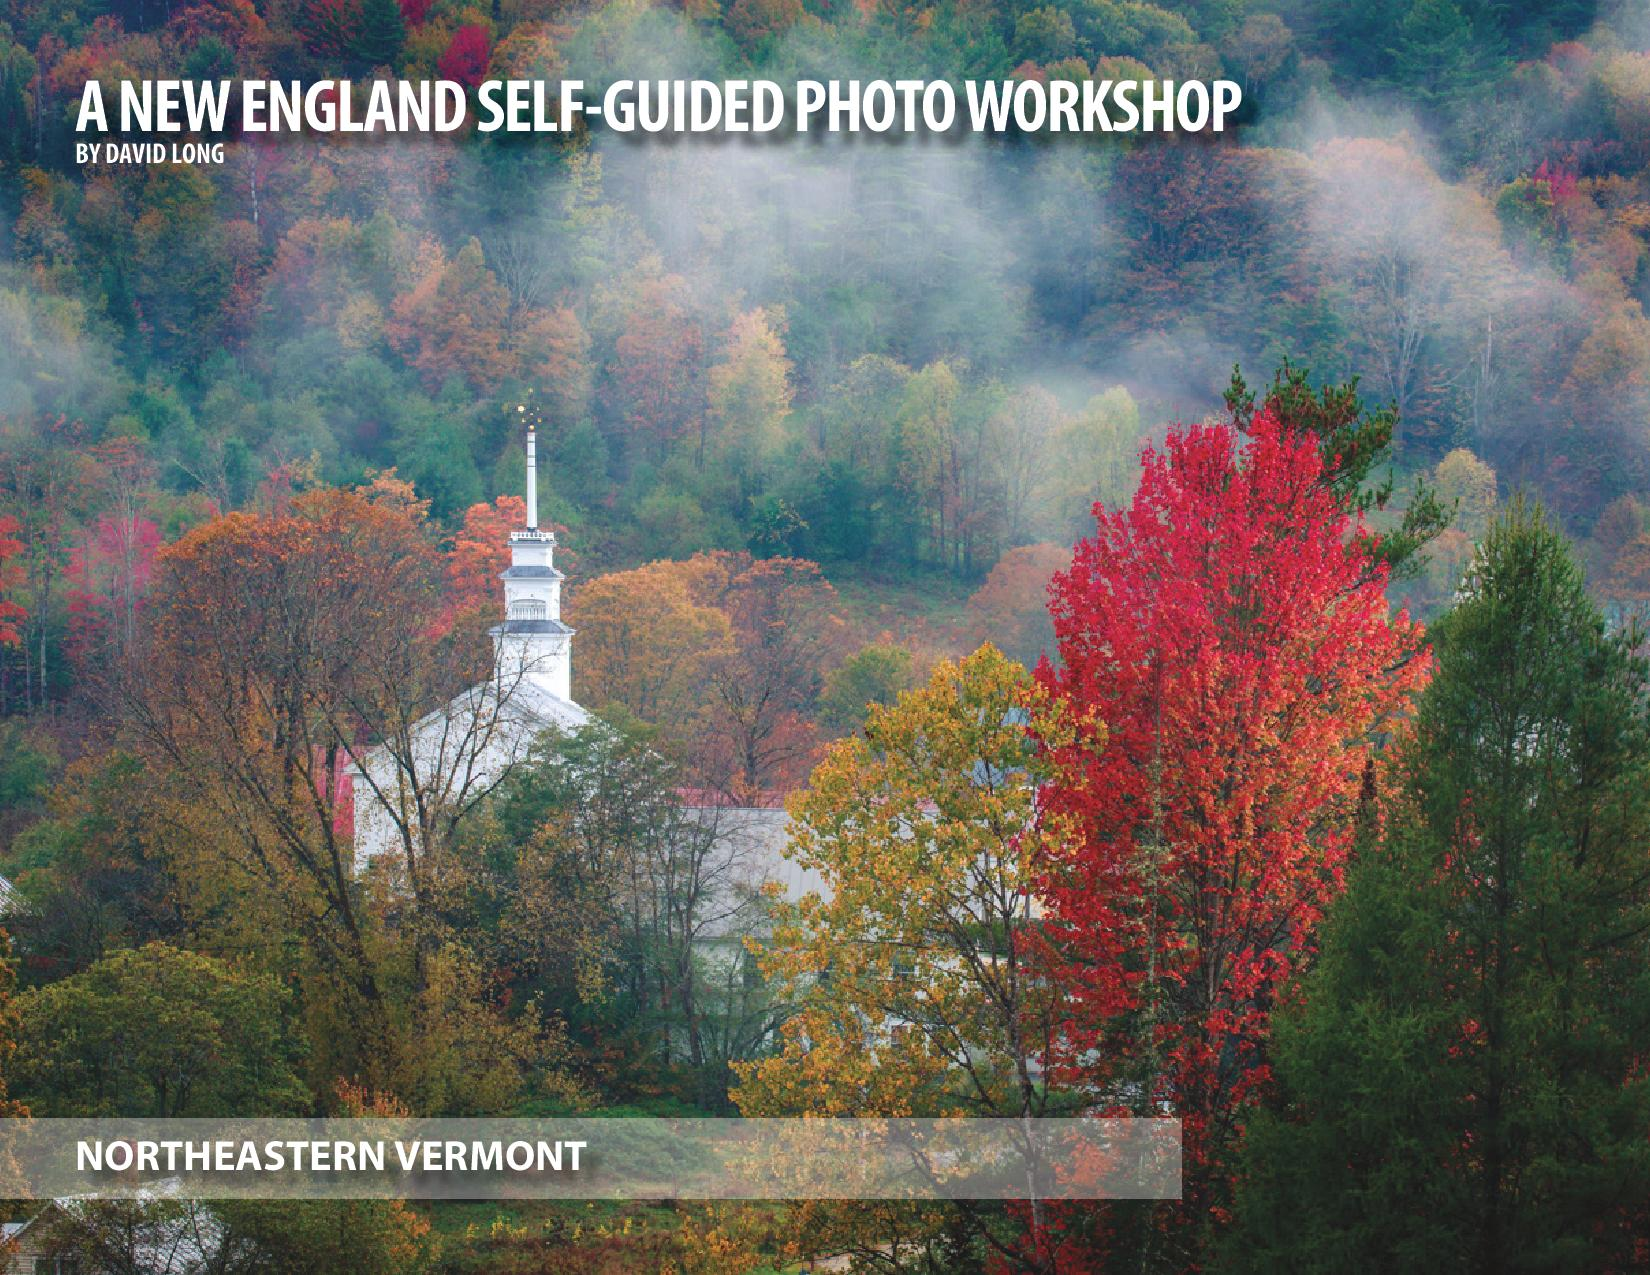 Northeast Vermont_Ebook -page-001.jpg